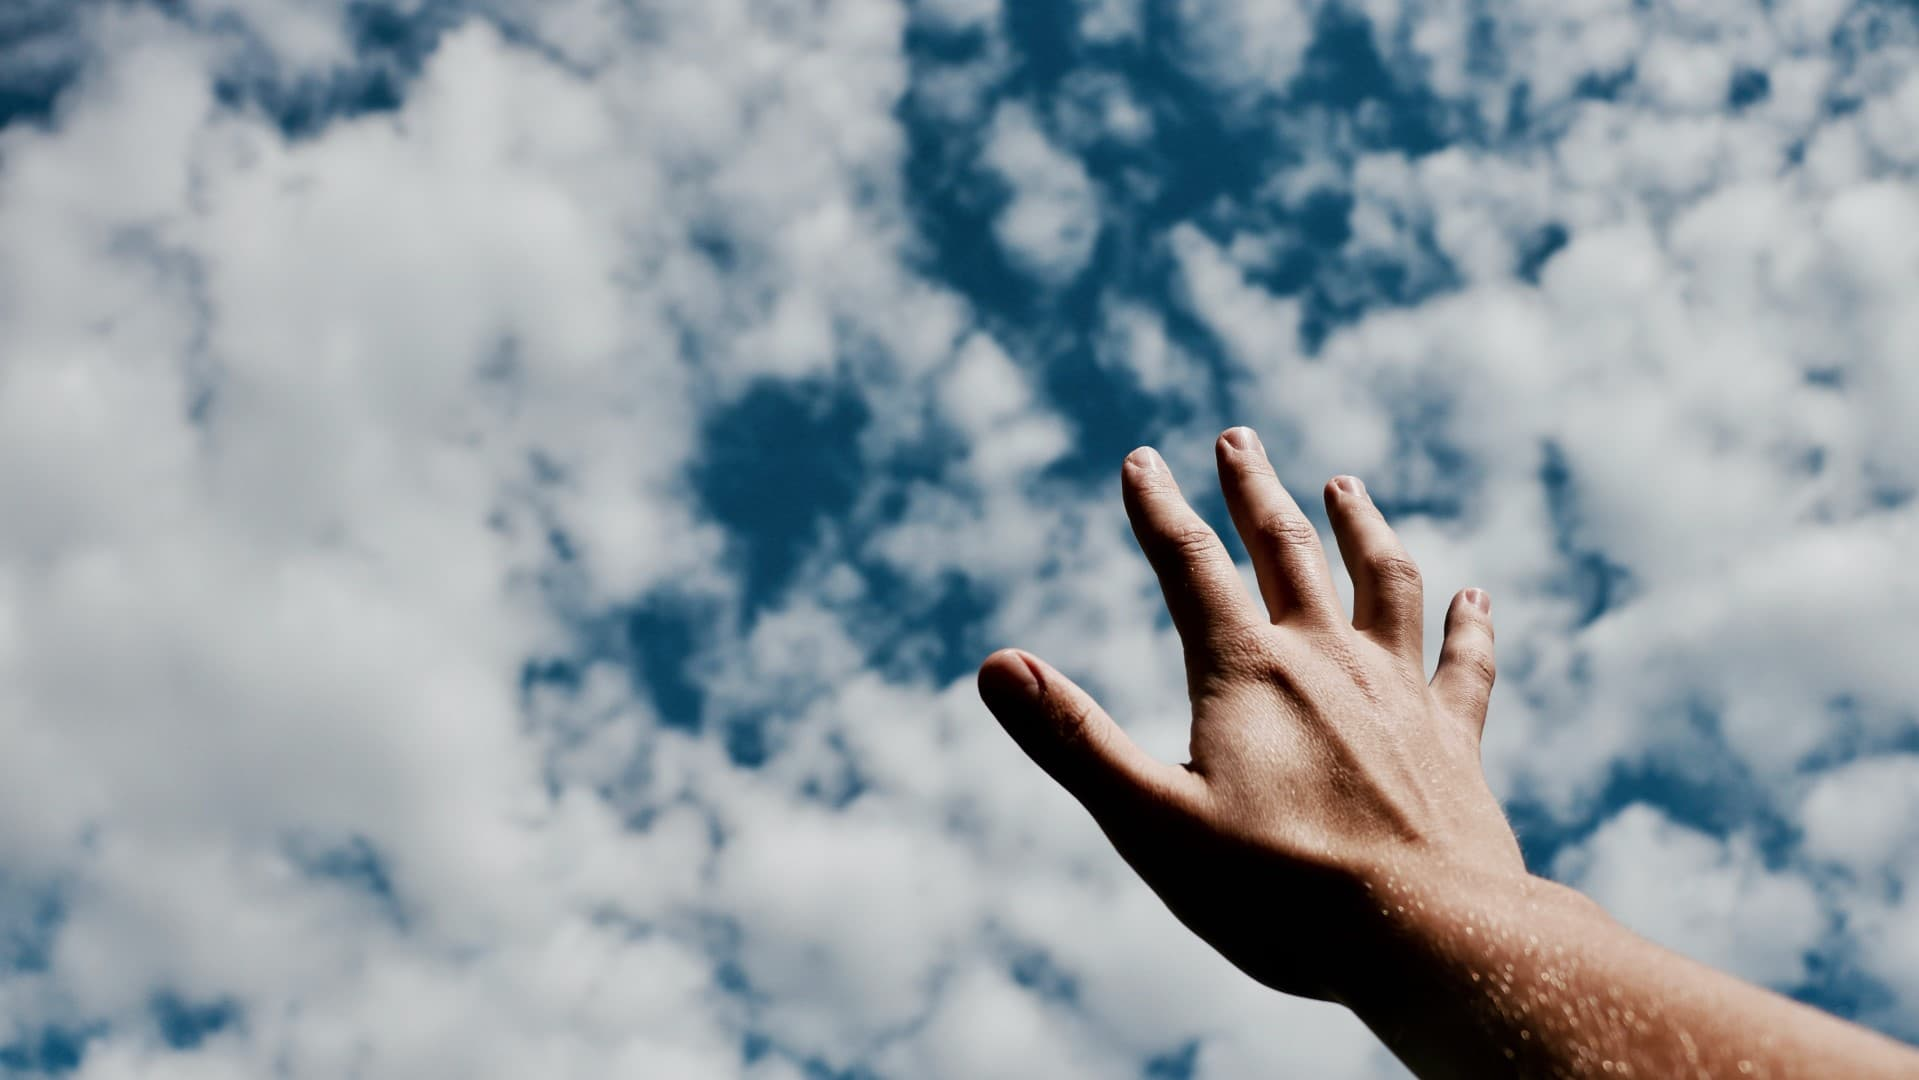 heand reaching out to sky